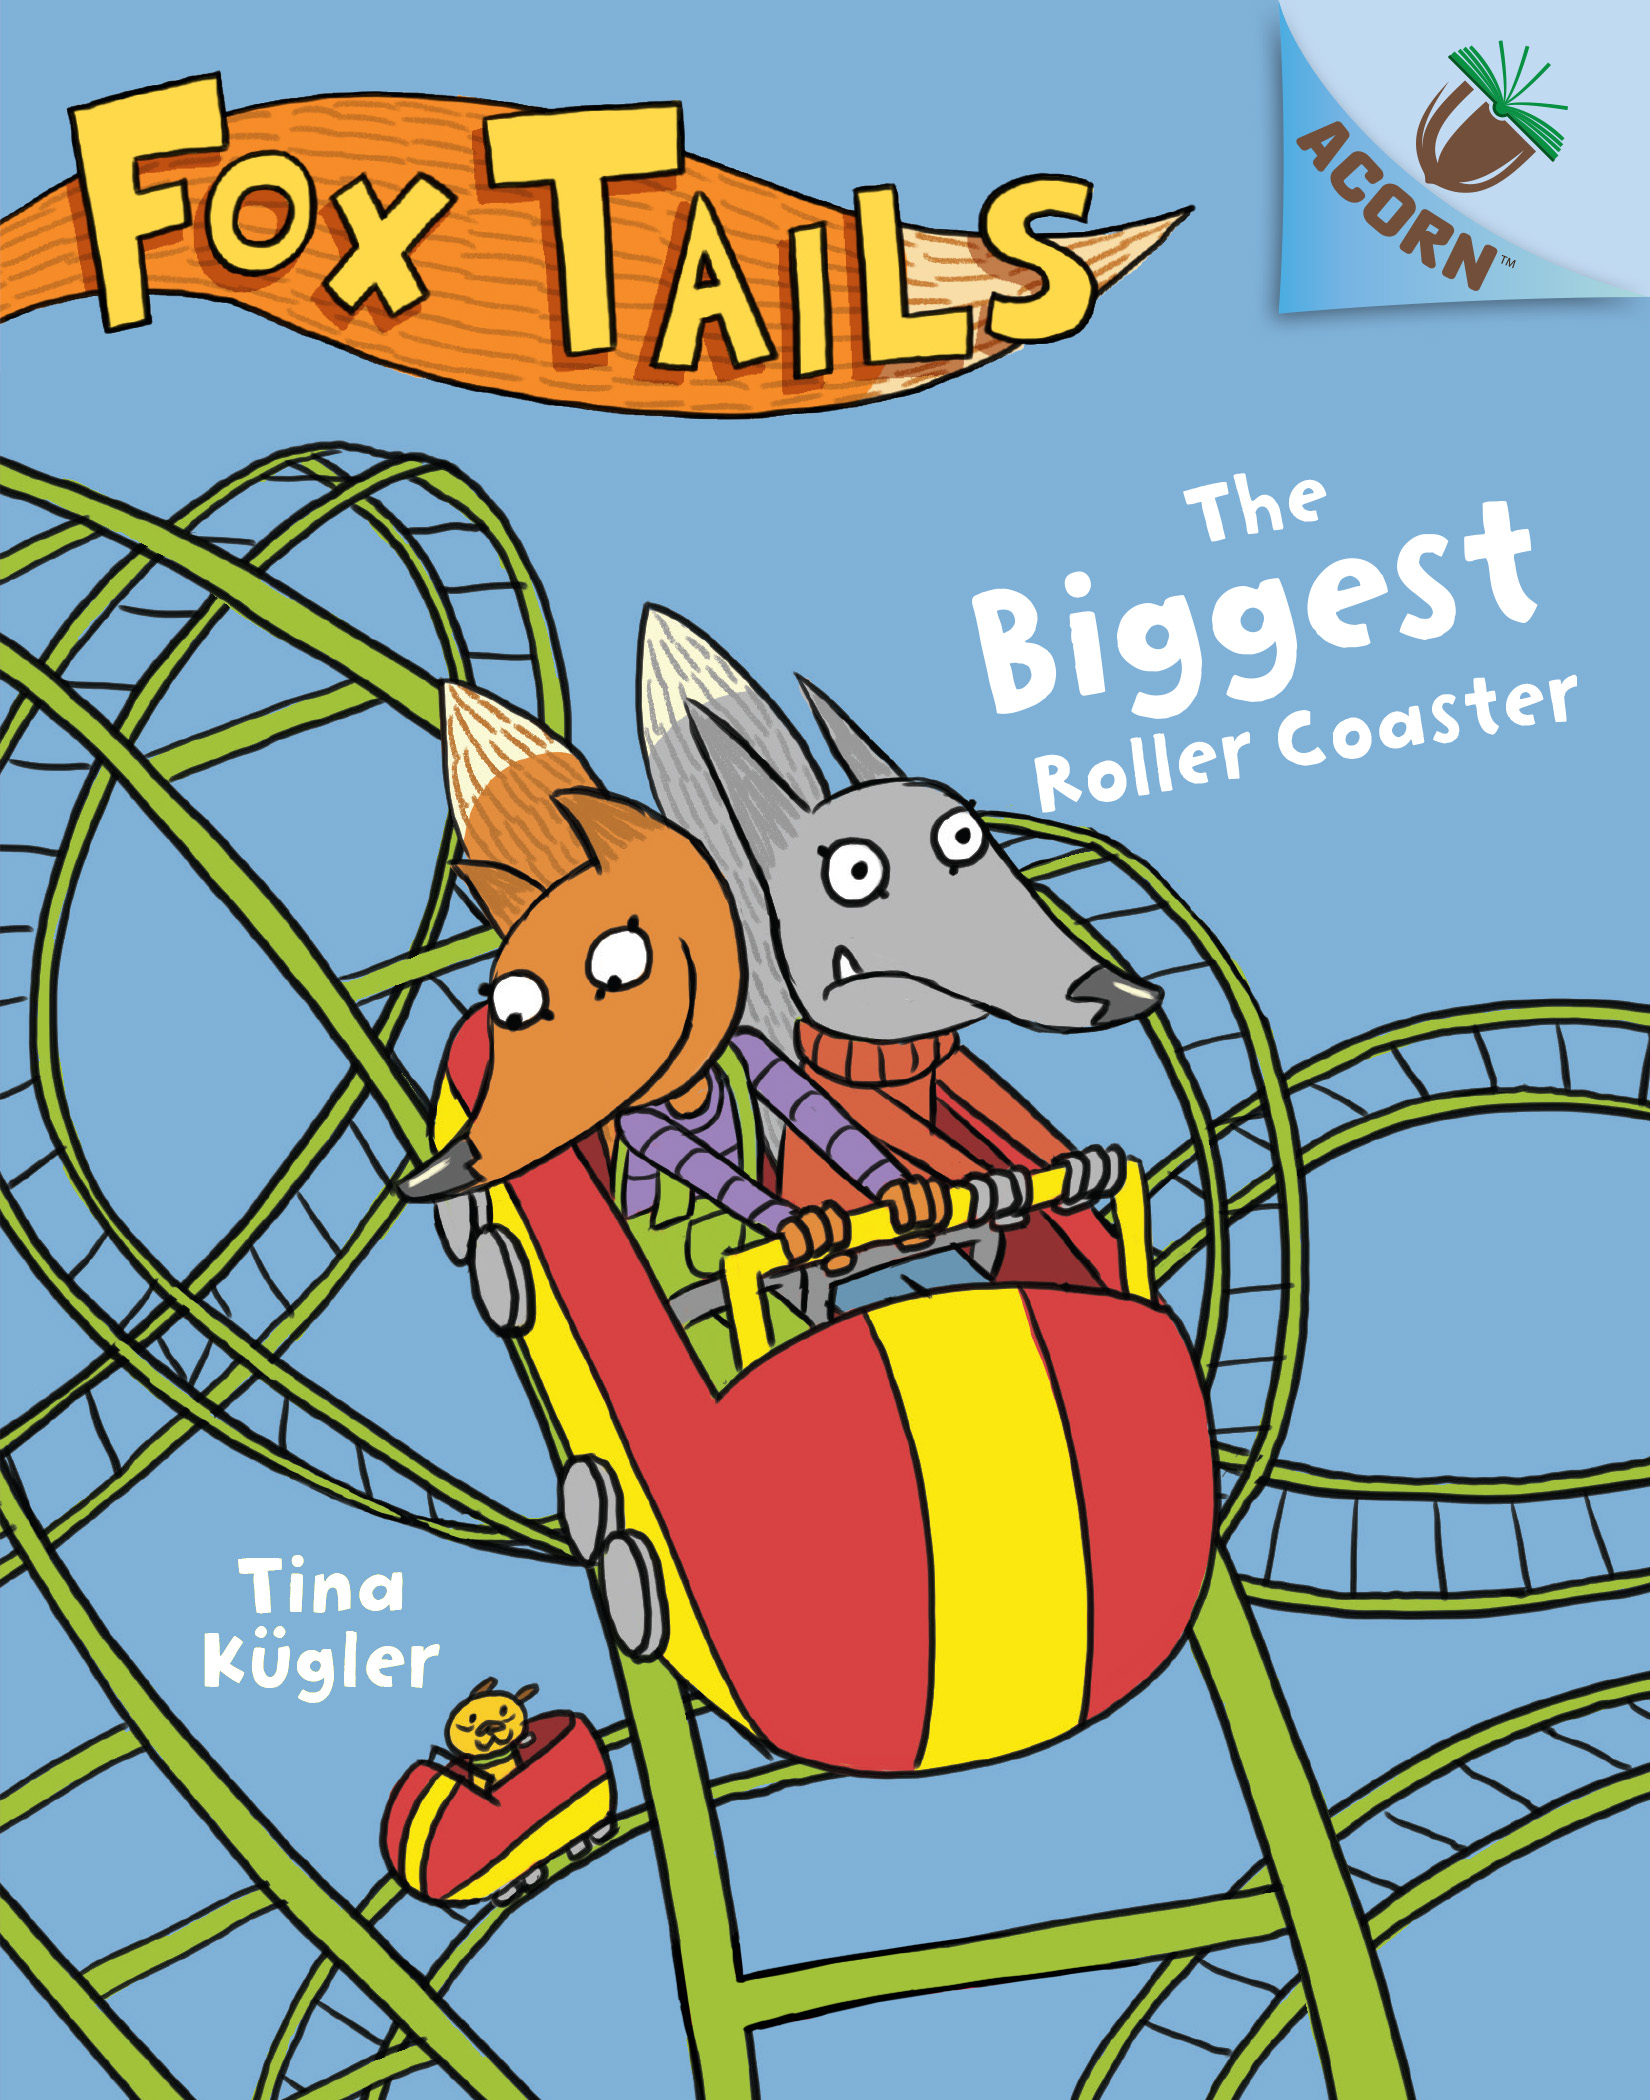 The Biggest Roller Coaster by Tina Kugler